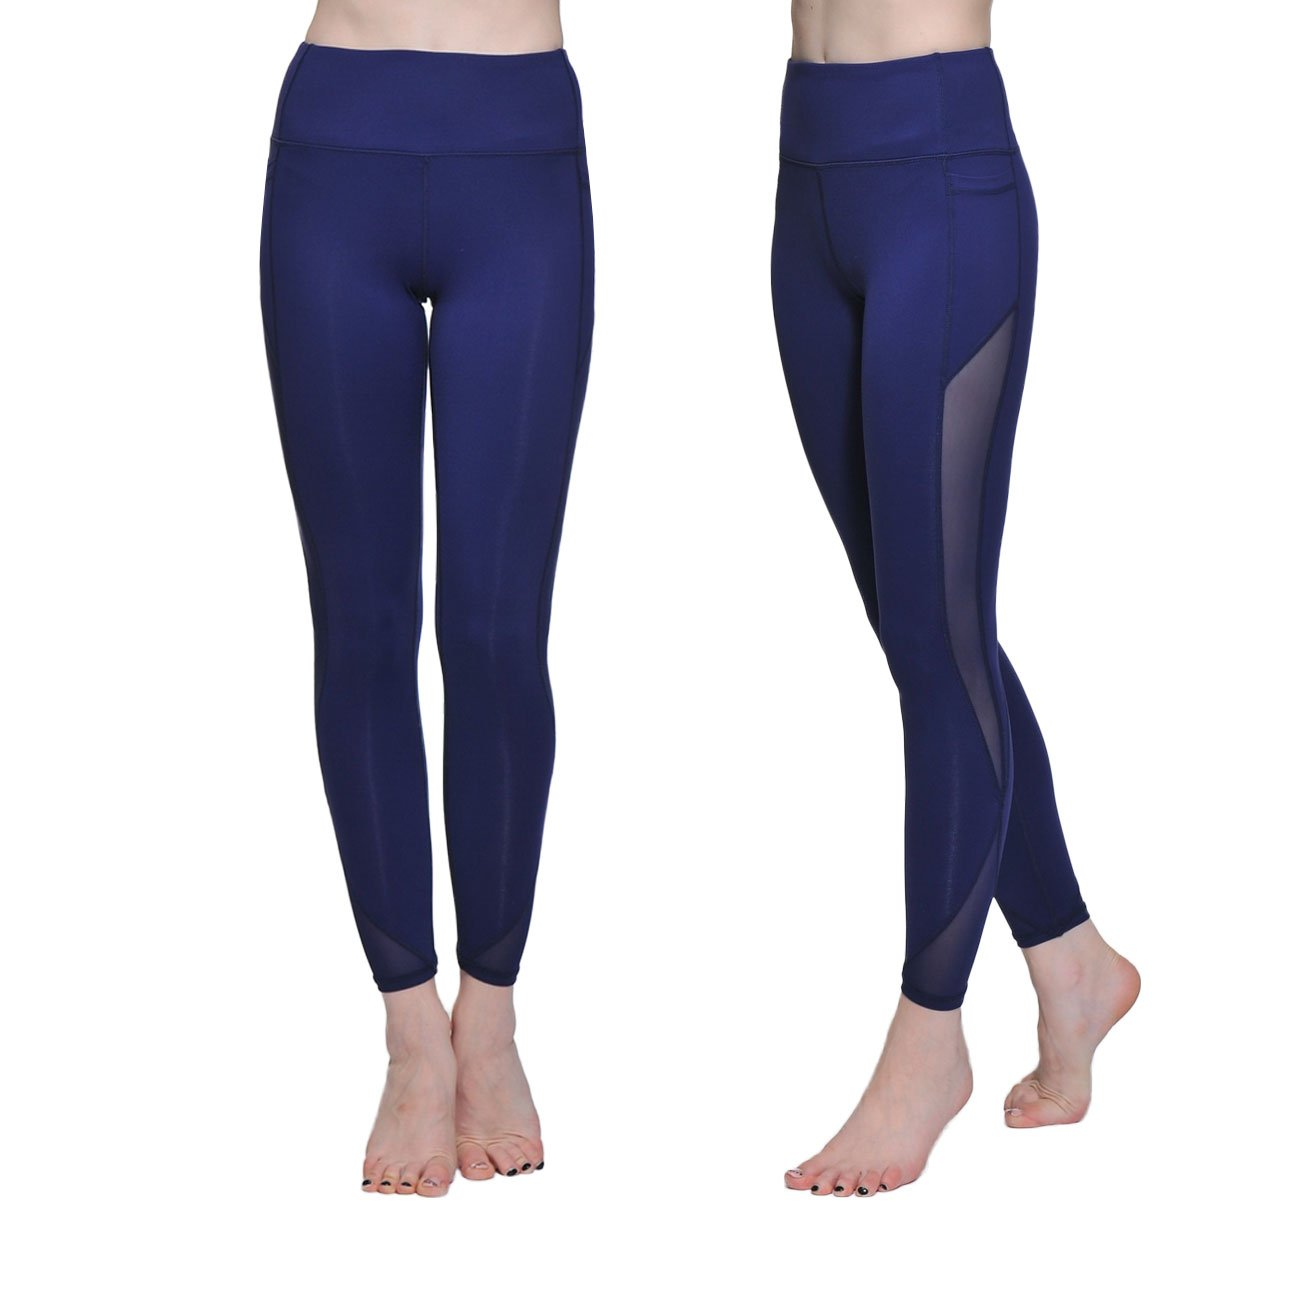 Chikool Women's Mesh Yoga Running Workout Pants High Waist Leggings w Phone Pockets (L, Navy) by Chikool